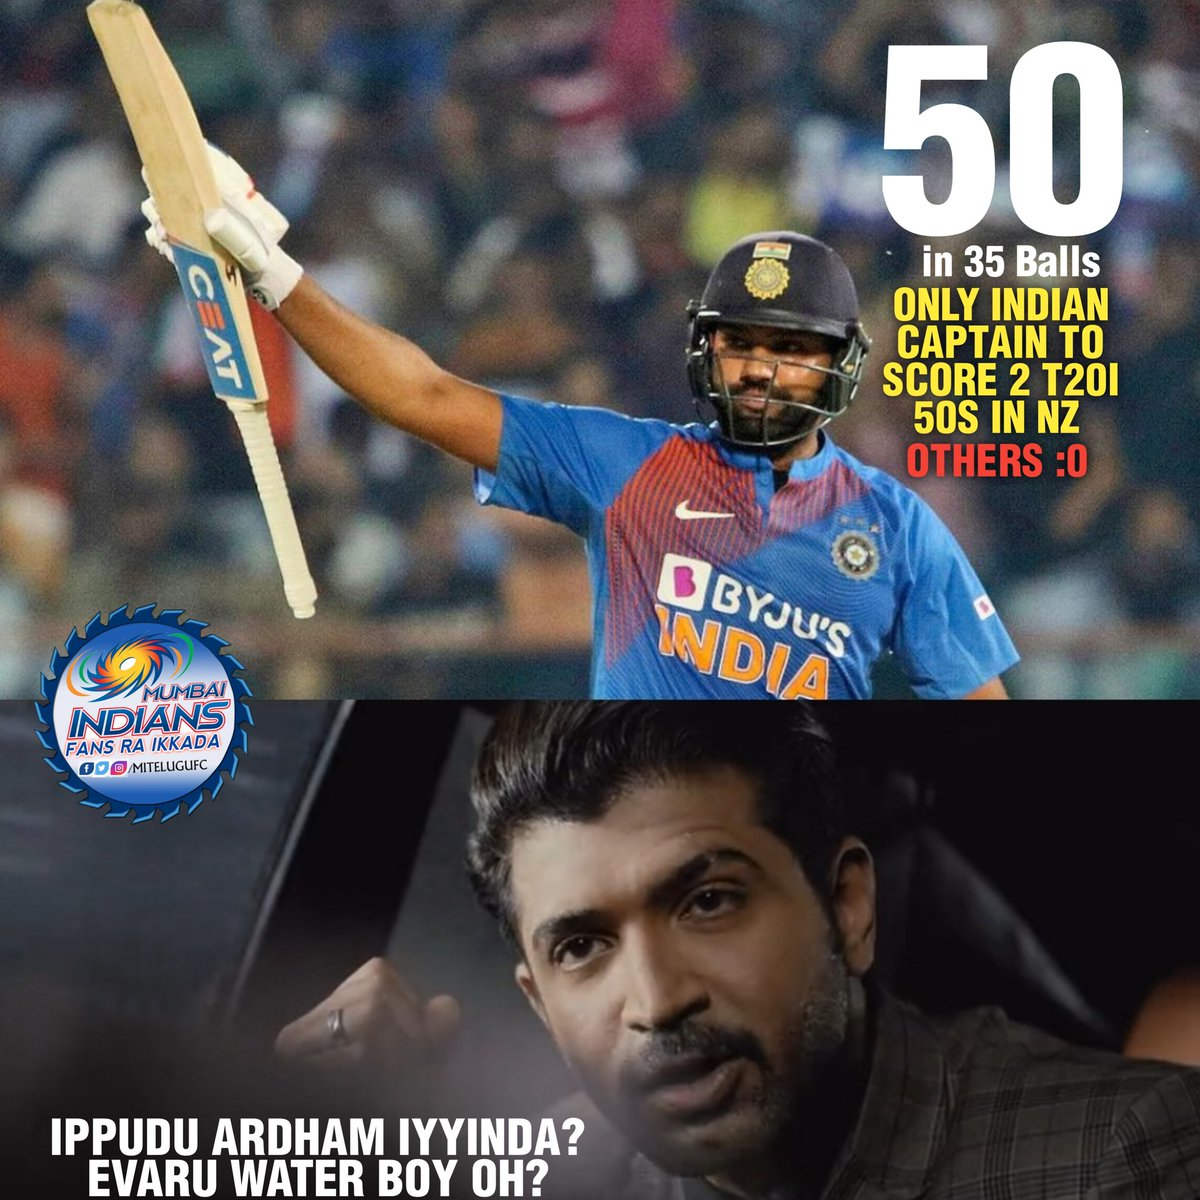 Retired hurt 60(41)  Get well soon HITMAN Only 2 captains scored 2 T20I 50s in NZ Rohit - 2  Morgan - 2 #RohitSharma #retiredhurt #INDvsNZ #indiavsnewzealand <br>http://pic.twitter.com/y2CfajXyou